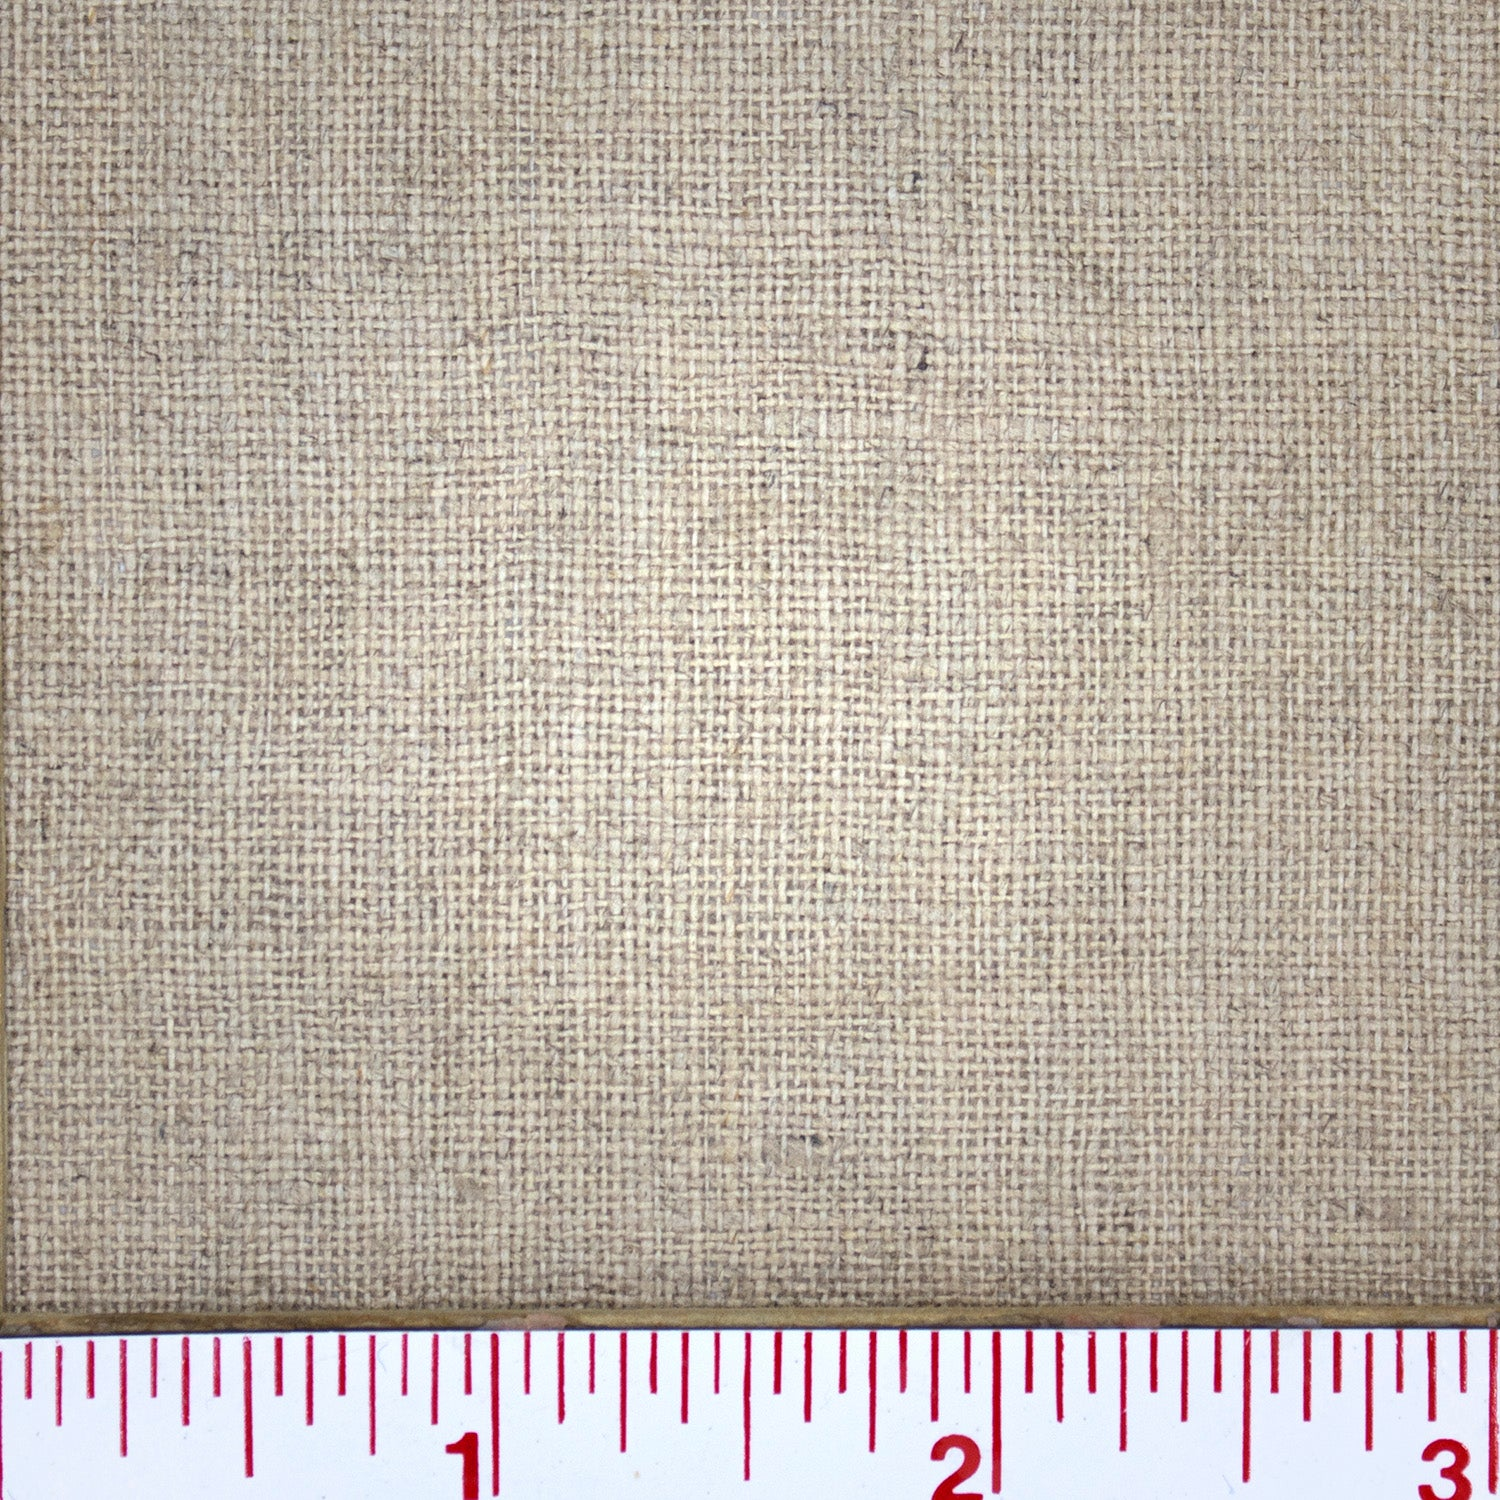 Natural Glazed Linen - $28.00 yd.